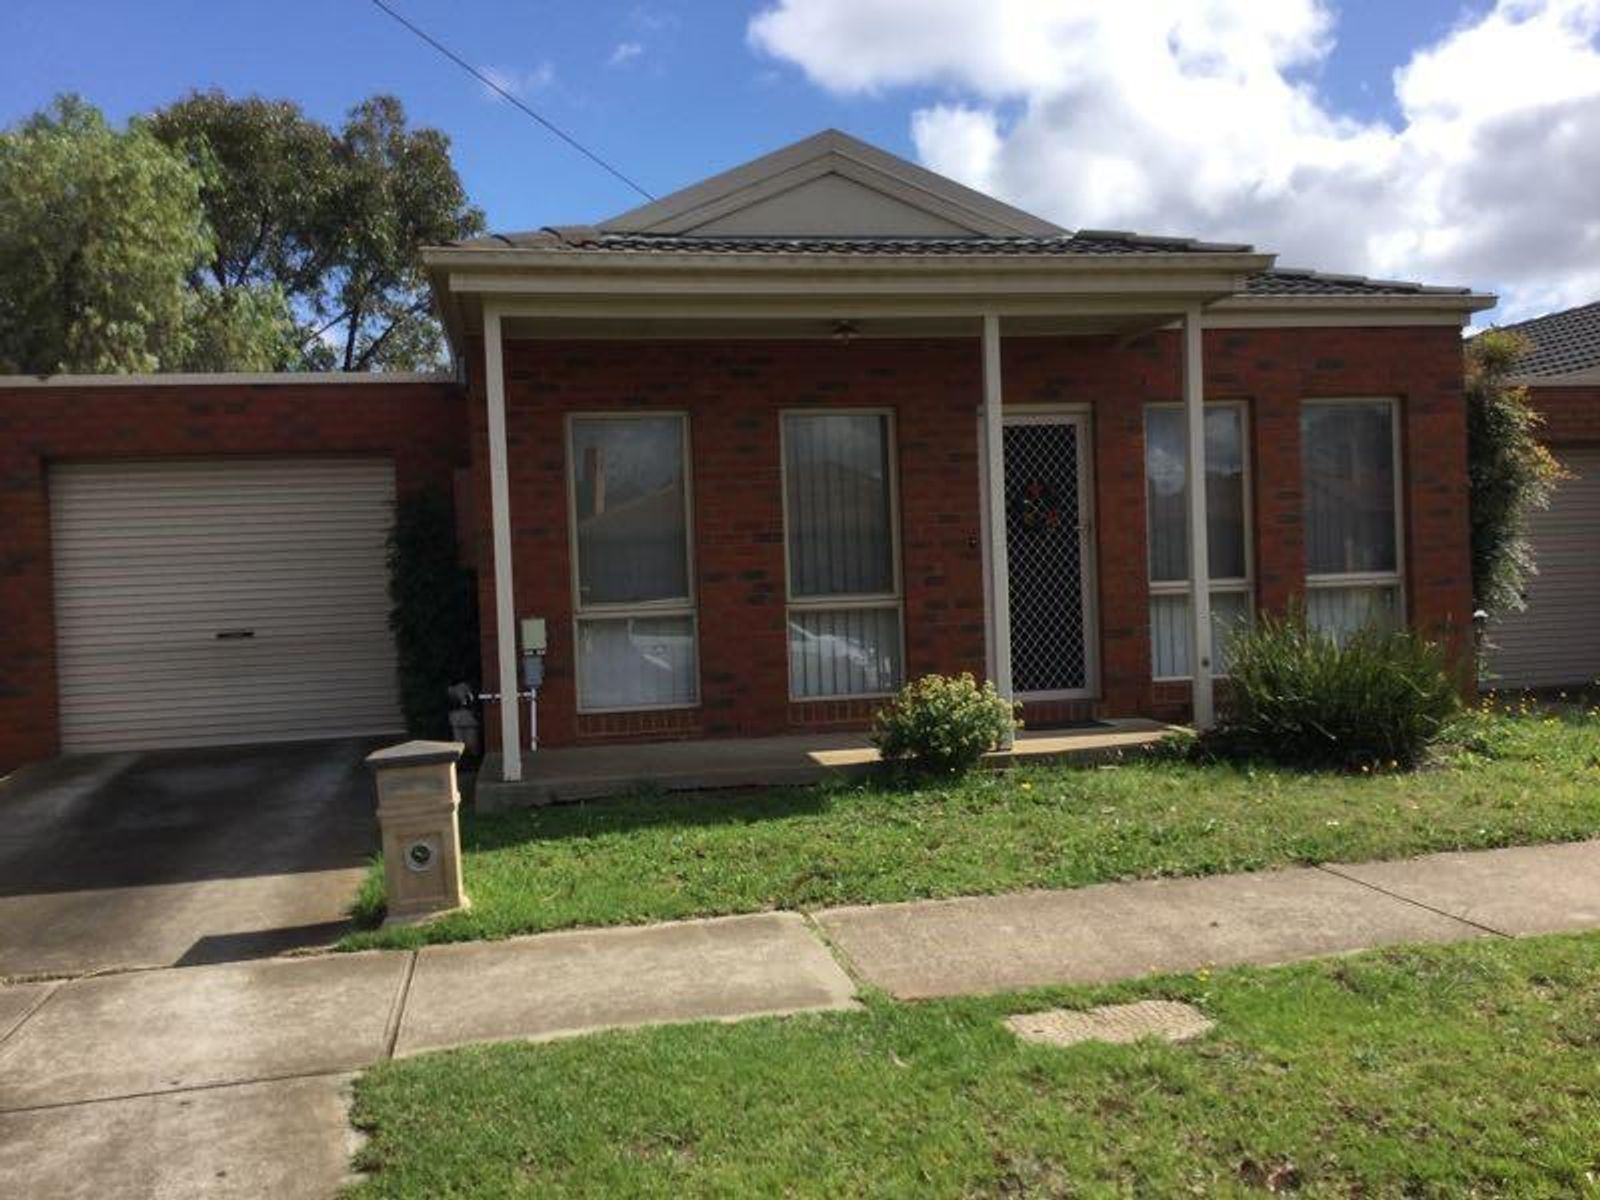 147 Shaws Road, Werribee, VIC 3030